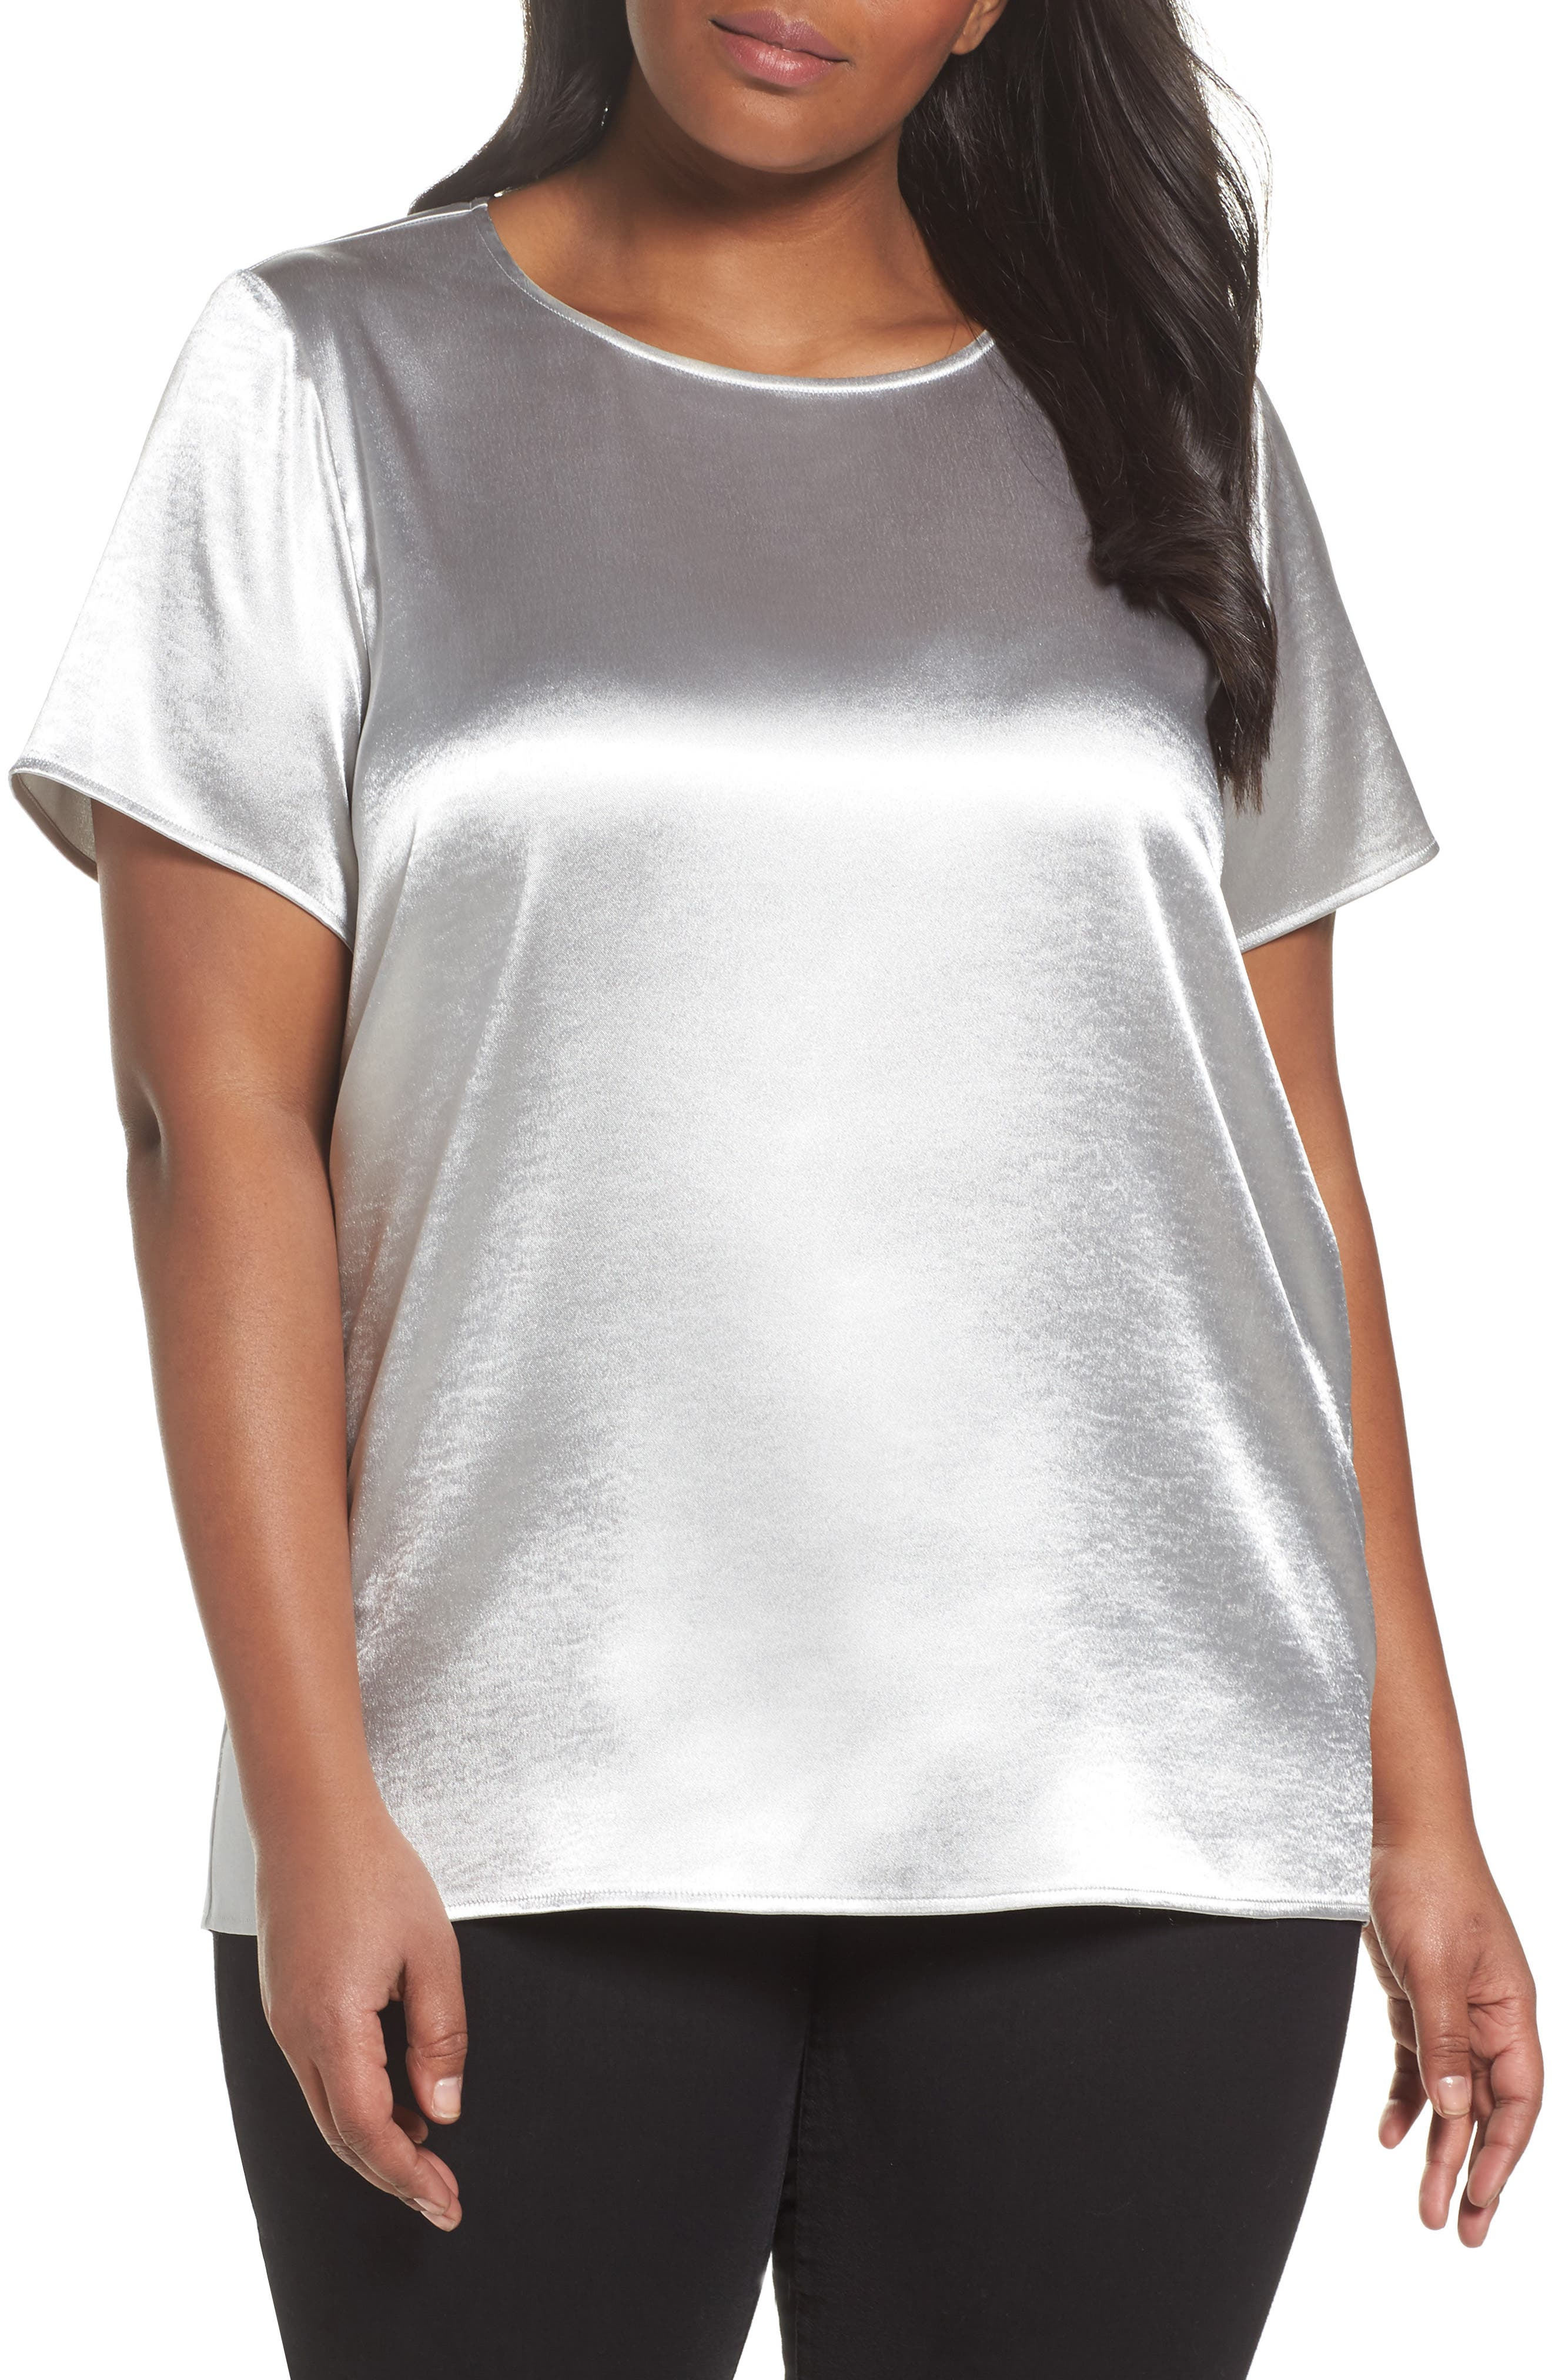 Alternate Image 1 Selected - Vince Camuto Rumpled Satin Blouse (Plus Size)